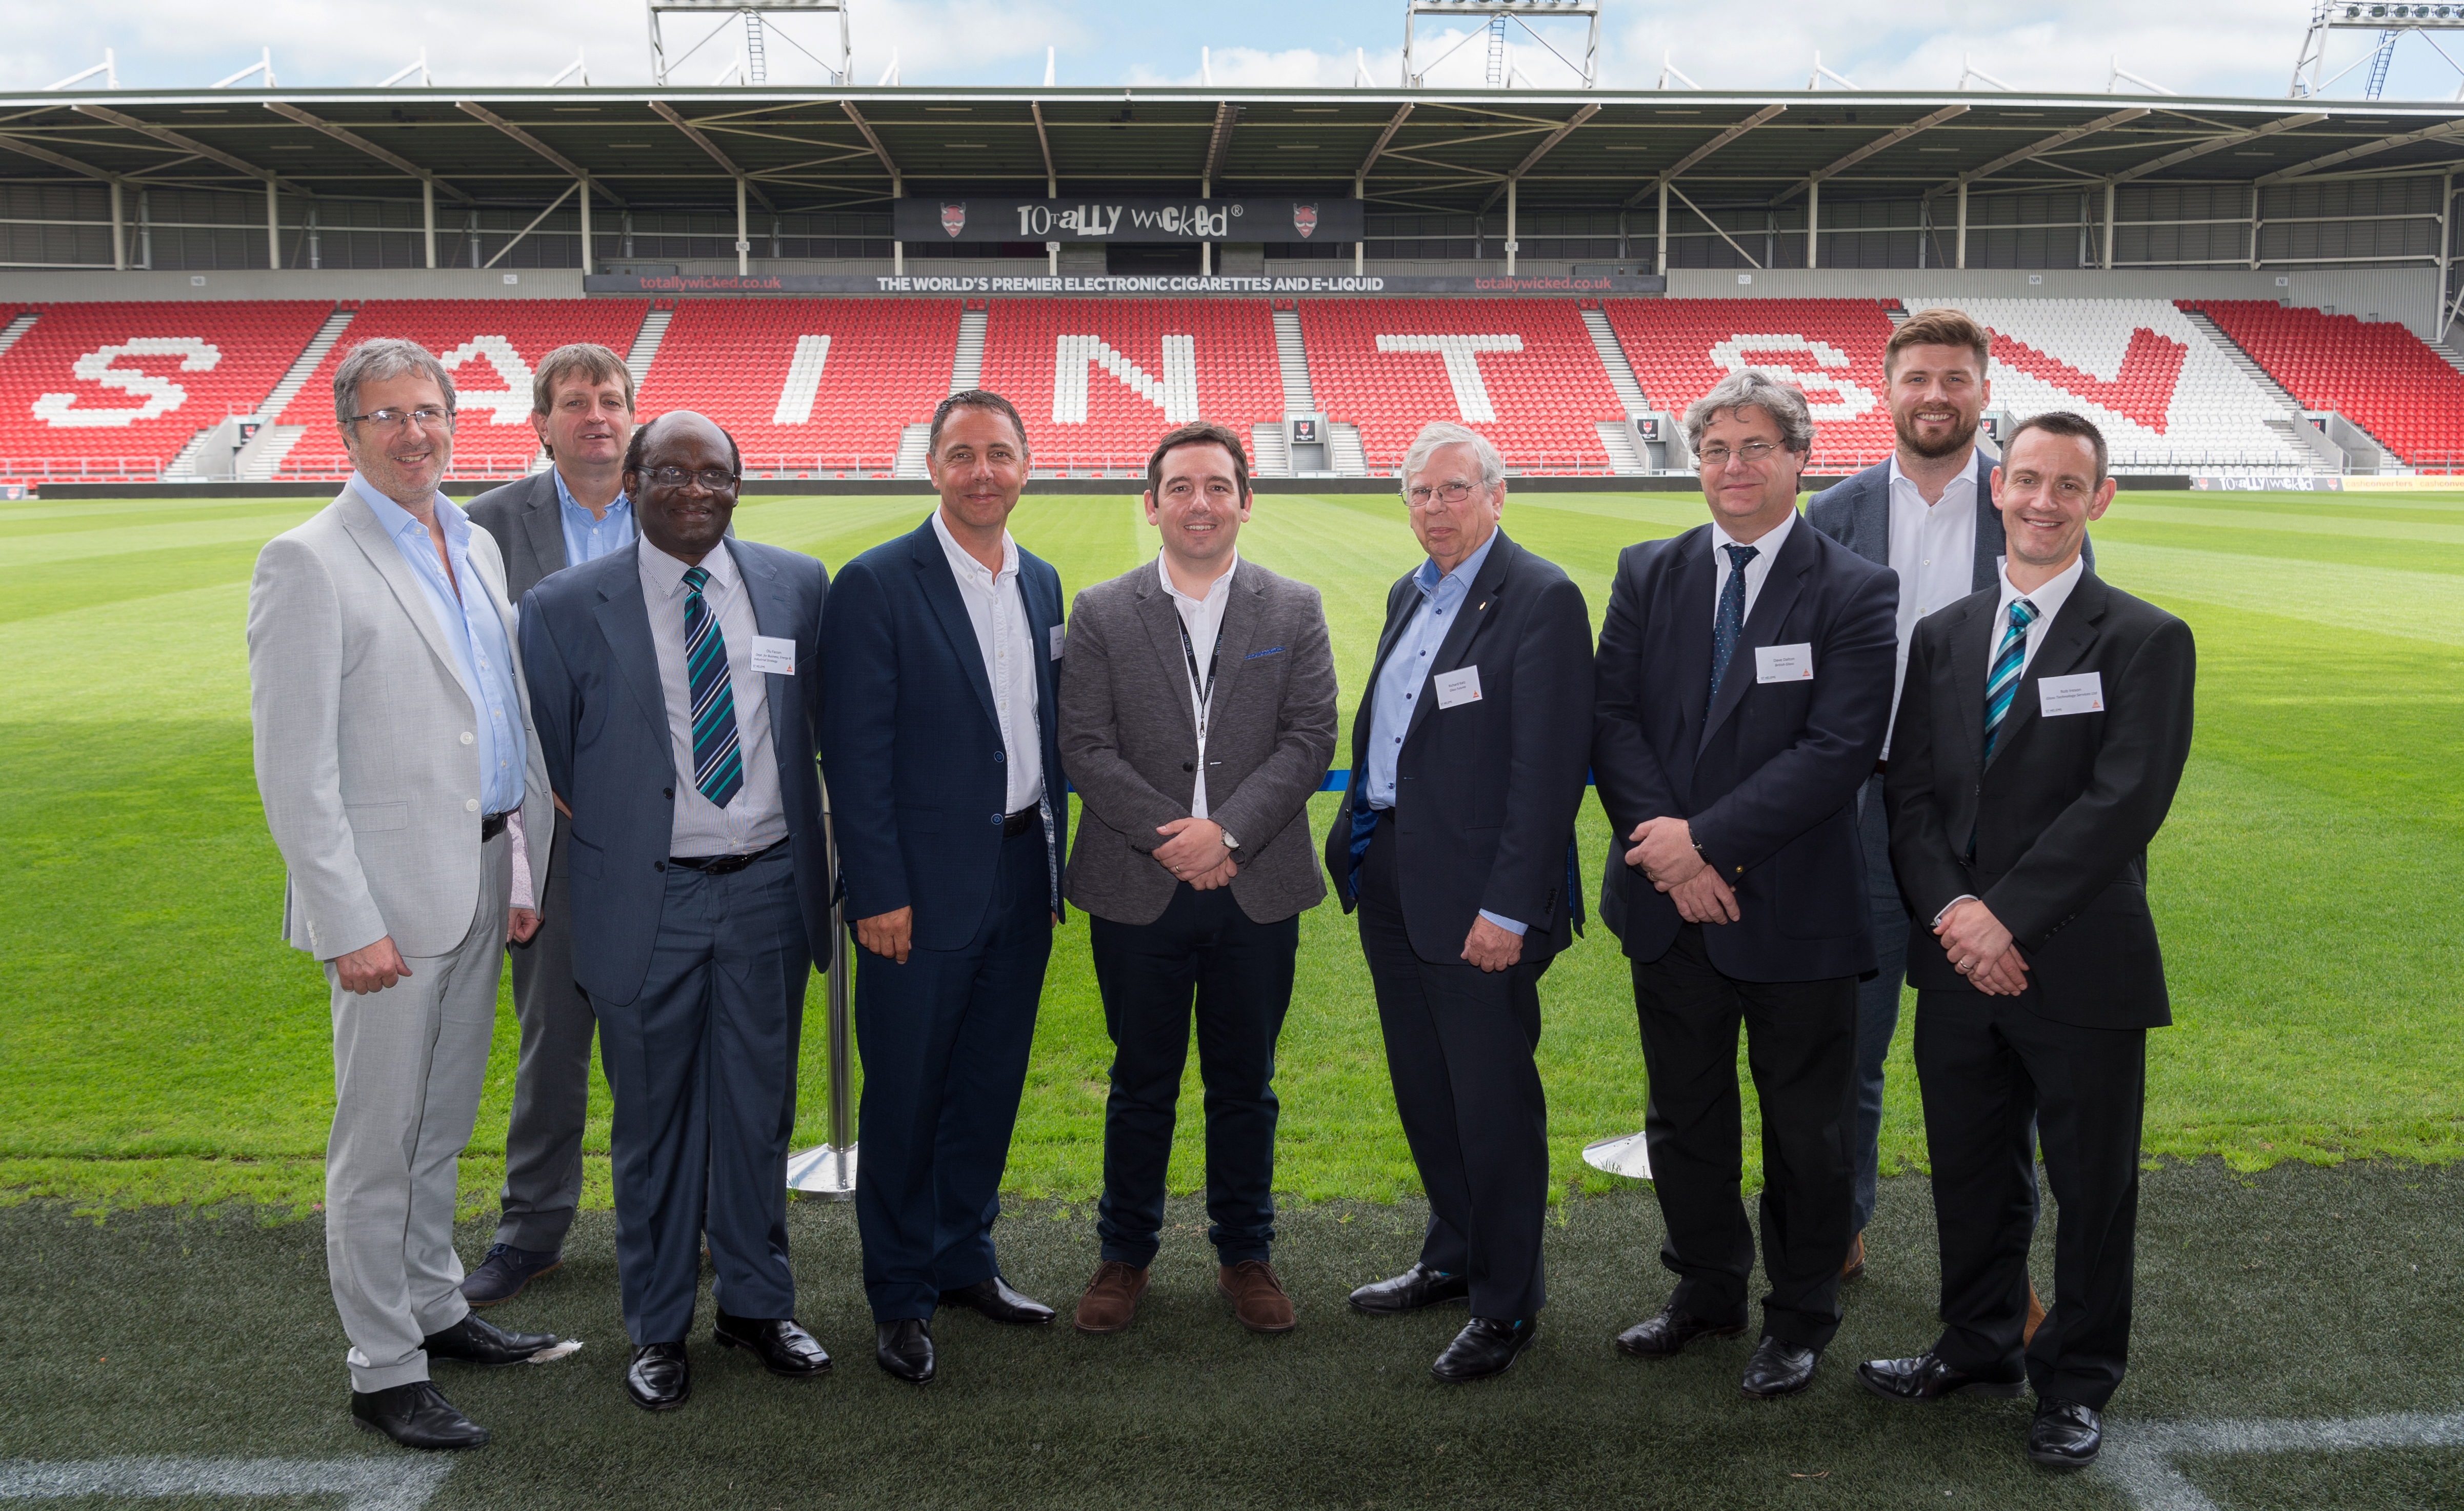 British Glass CEO Dave Dalton and Glass Technology Servcies' Rob Ireson pose on the Totally Wicked Stadium pitch alongside speakers from across the day including Cllr David Baines, leader of St Helens Council